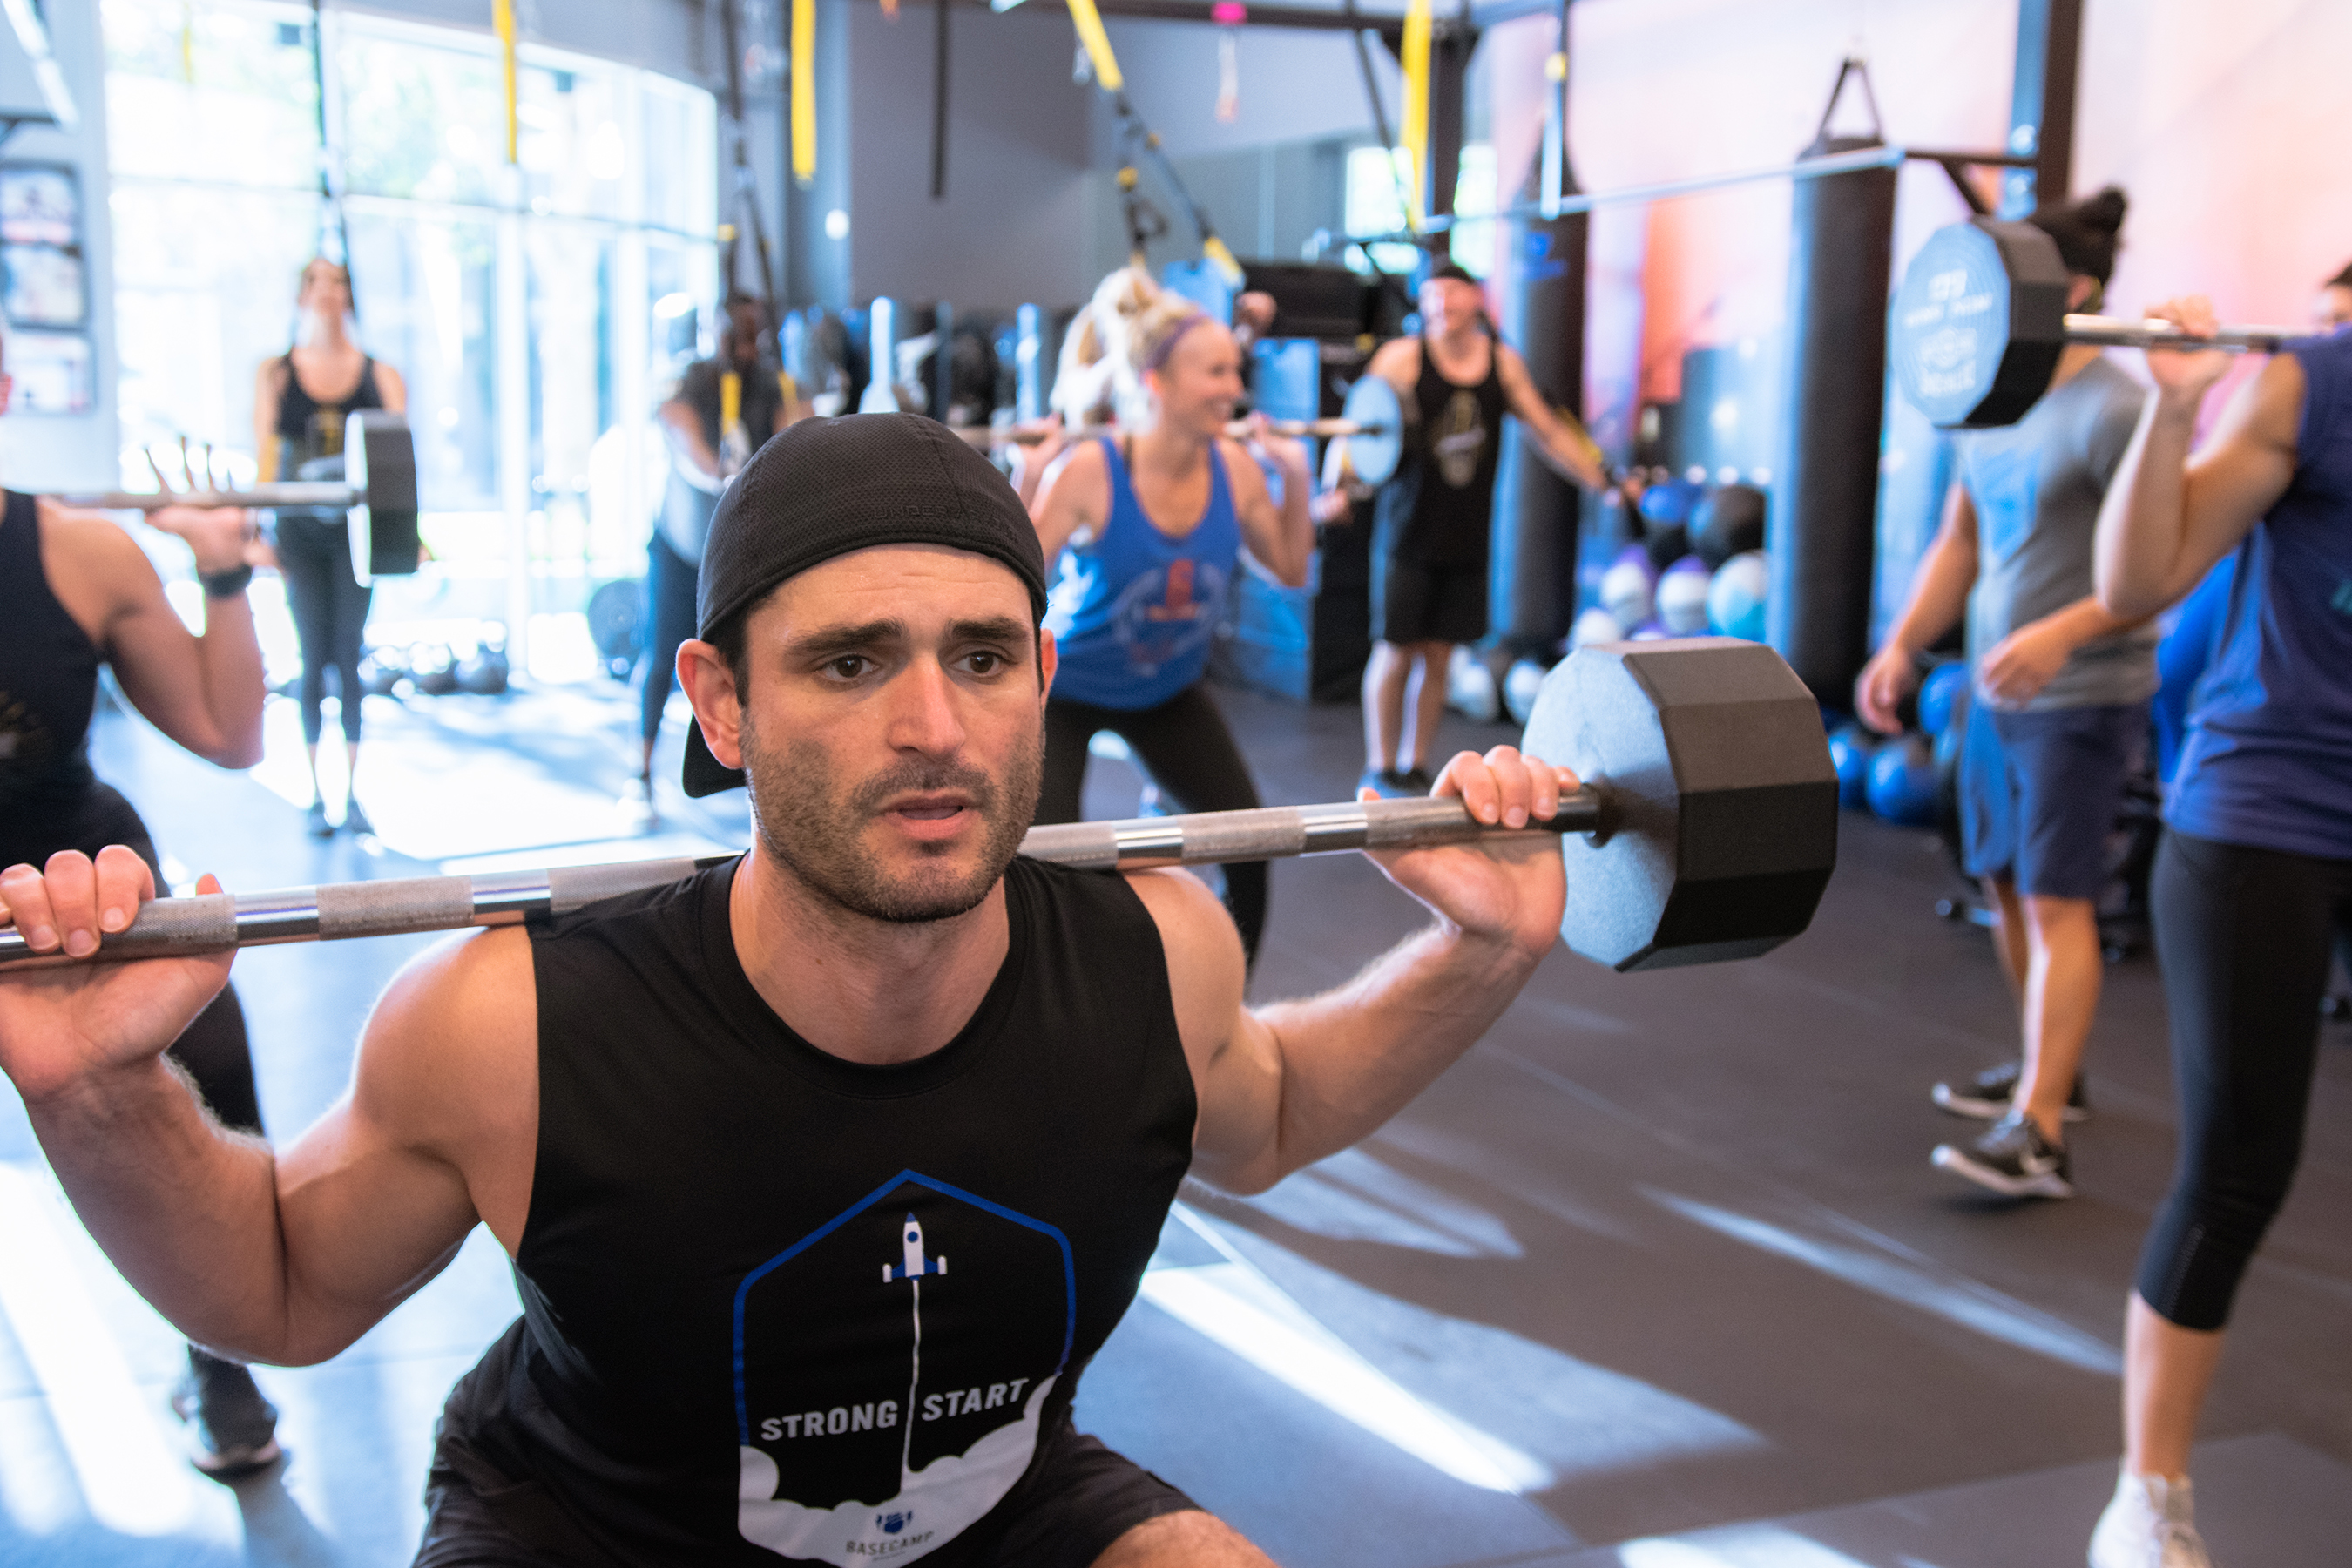 Basecamp's vision is to help members be the best versions of themselves, improve their self-esteem and connect to a purpose that is greater than fitness.